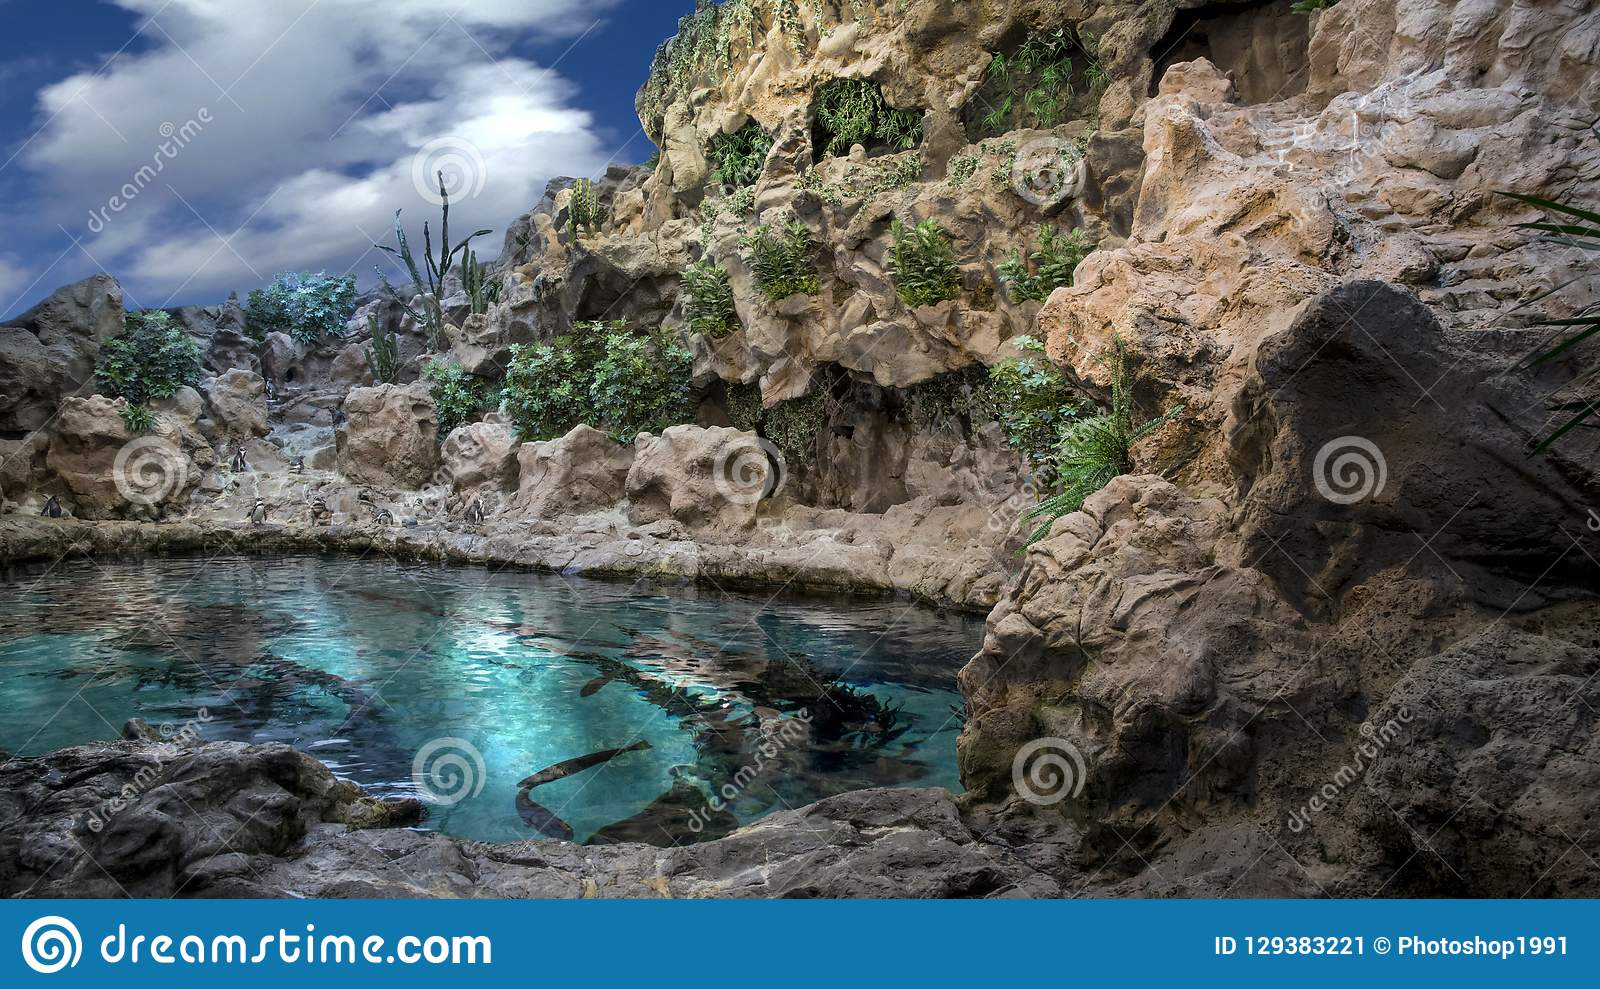 Nature water blue whit fish penguins mountain plants